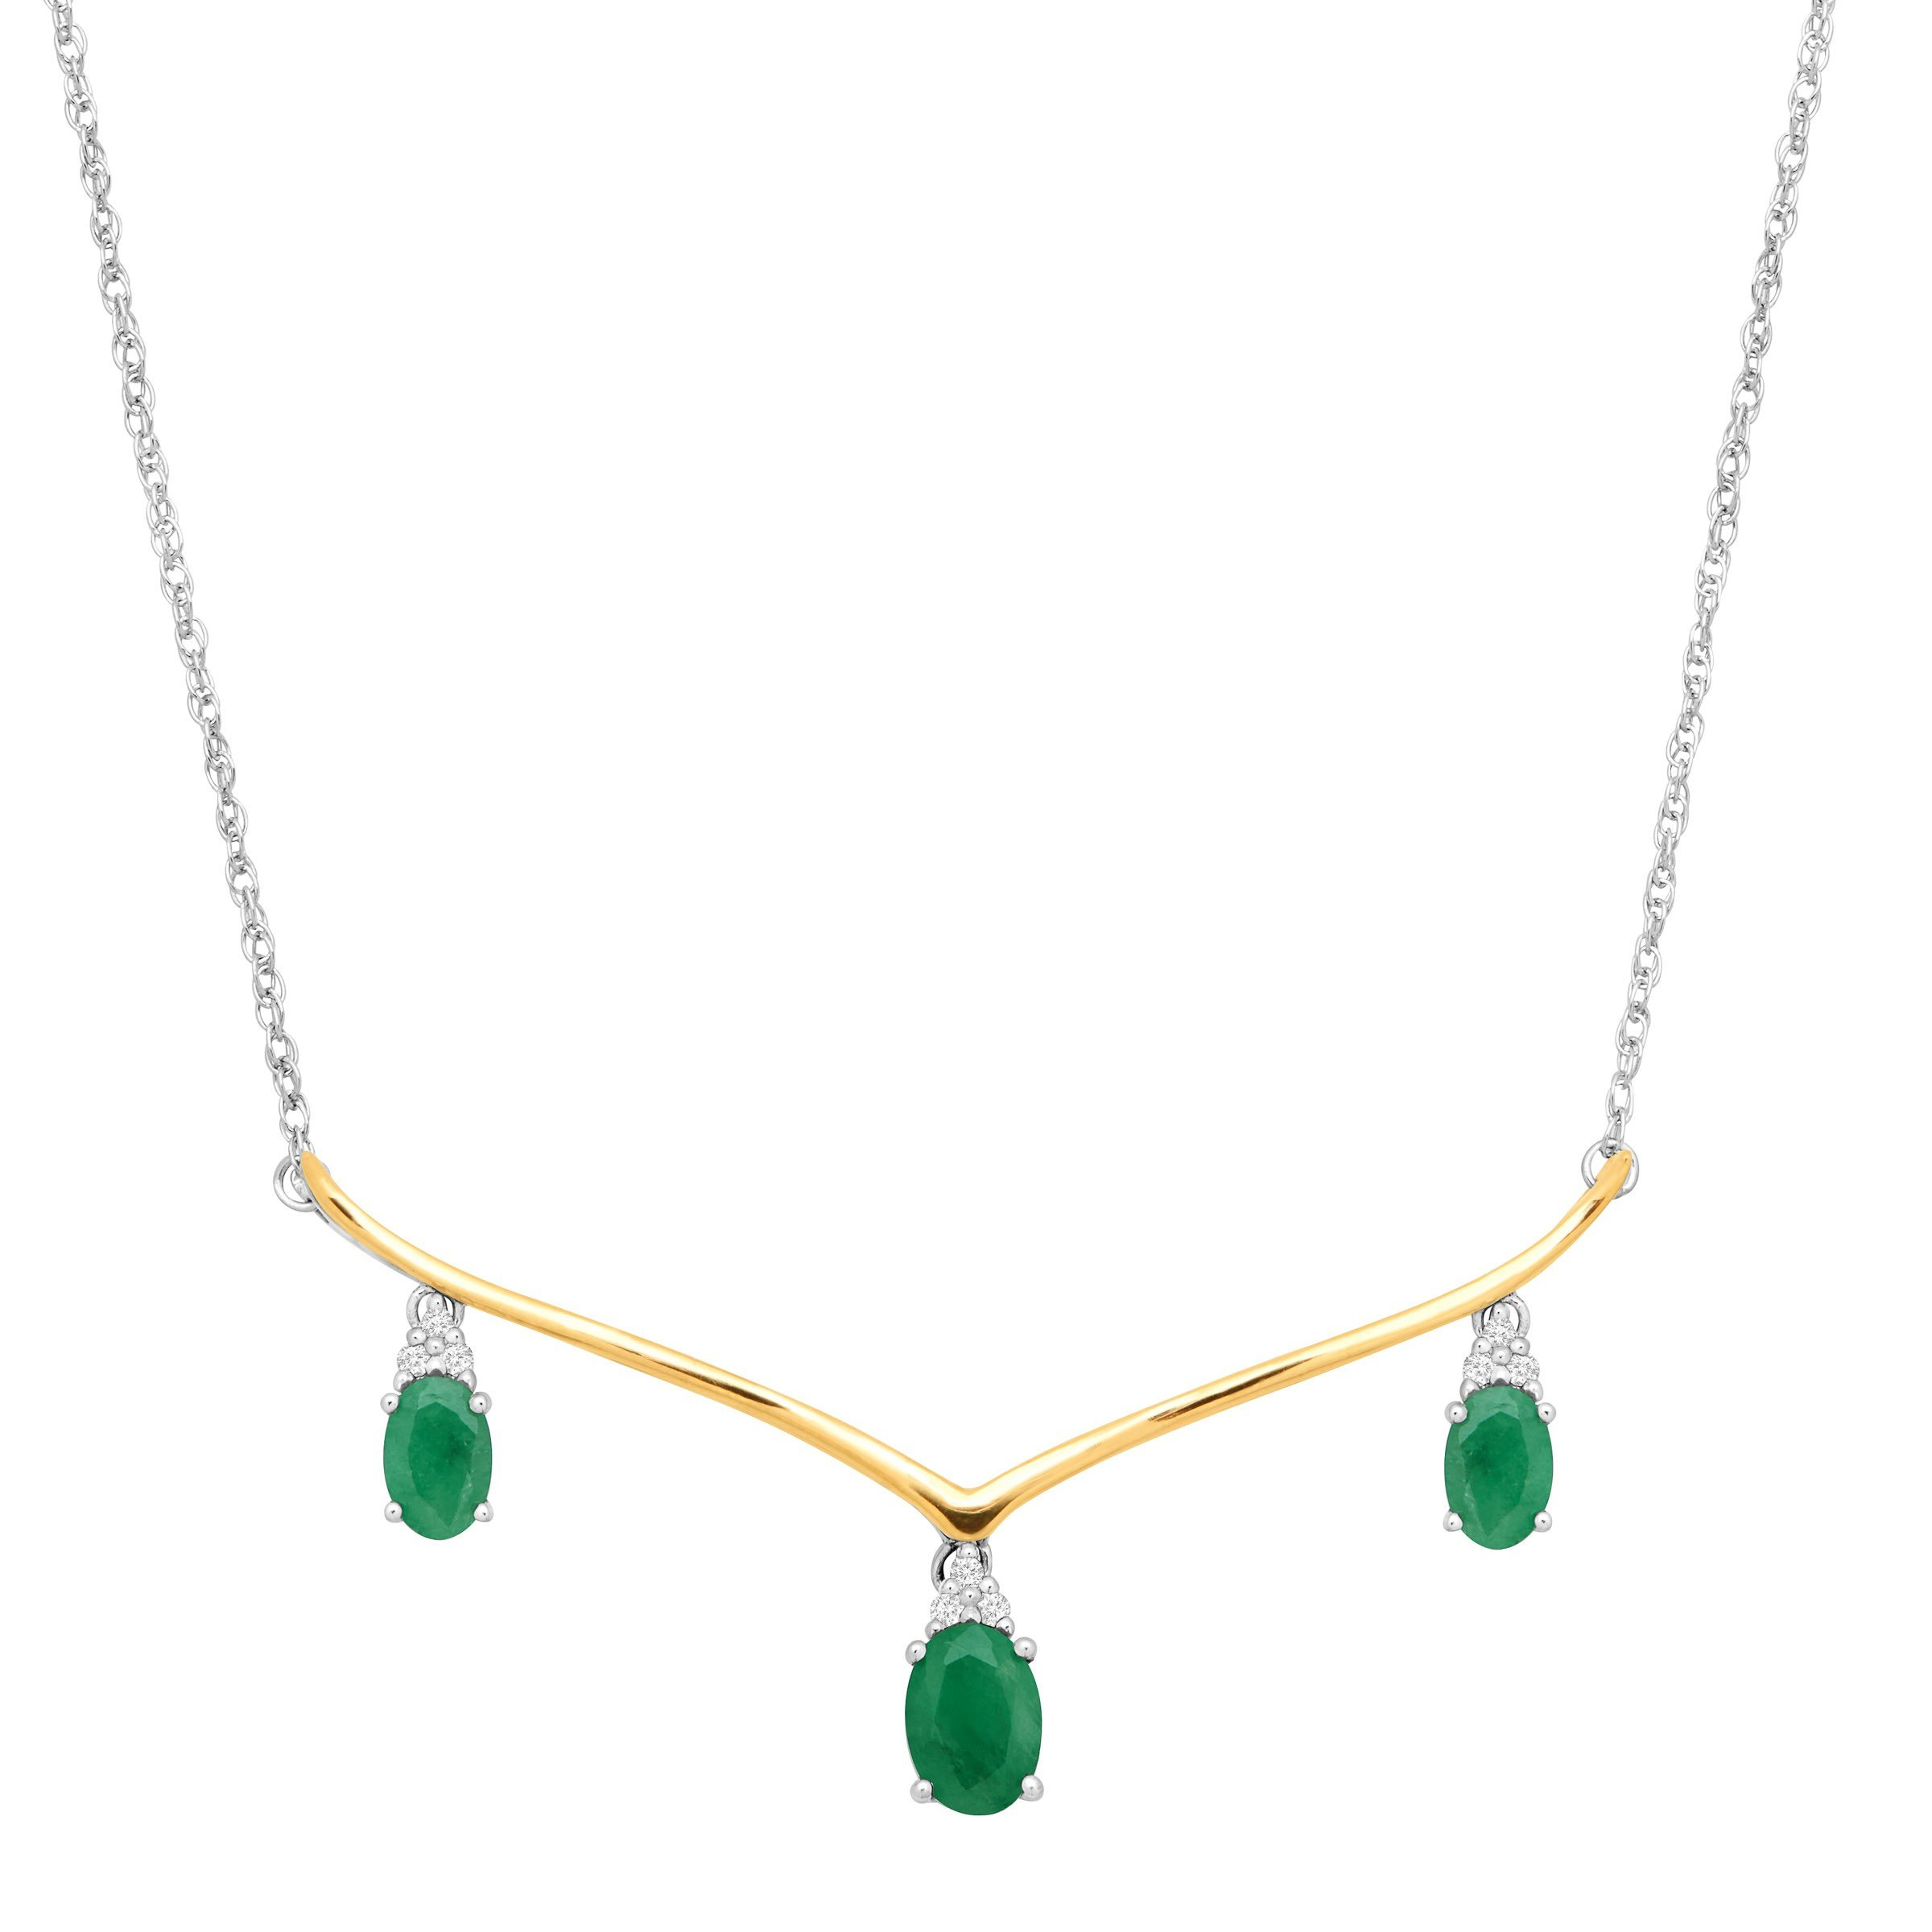 1 3/4 ct Natural Emerald Garland Necklace with Diamonds in Sterling Silver & 14K Gold